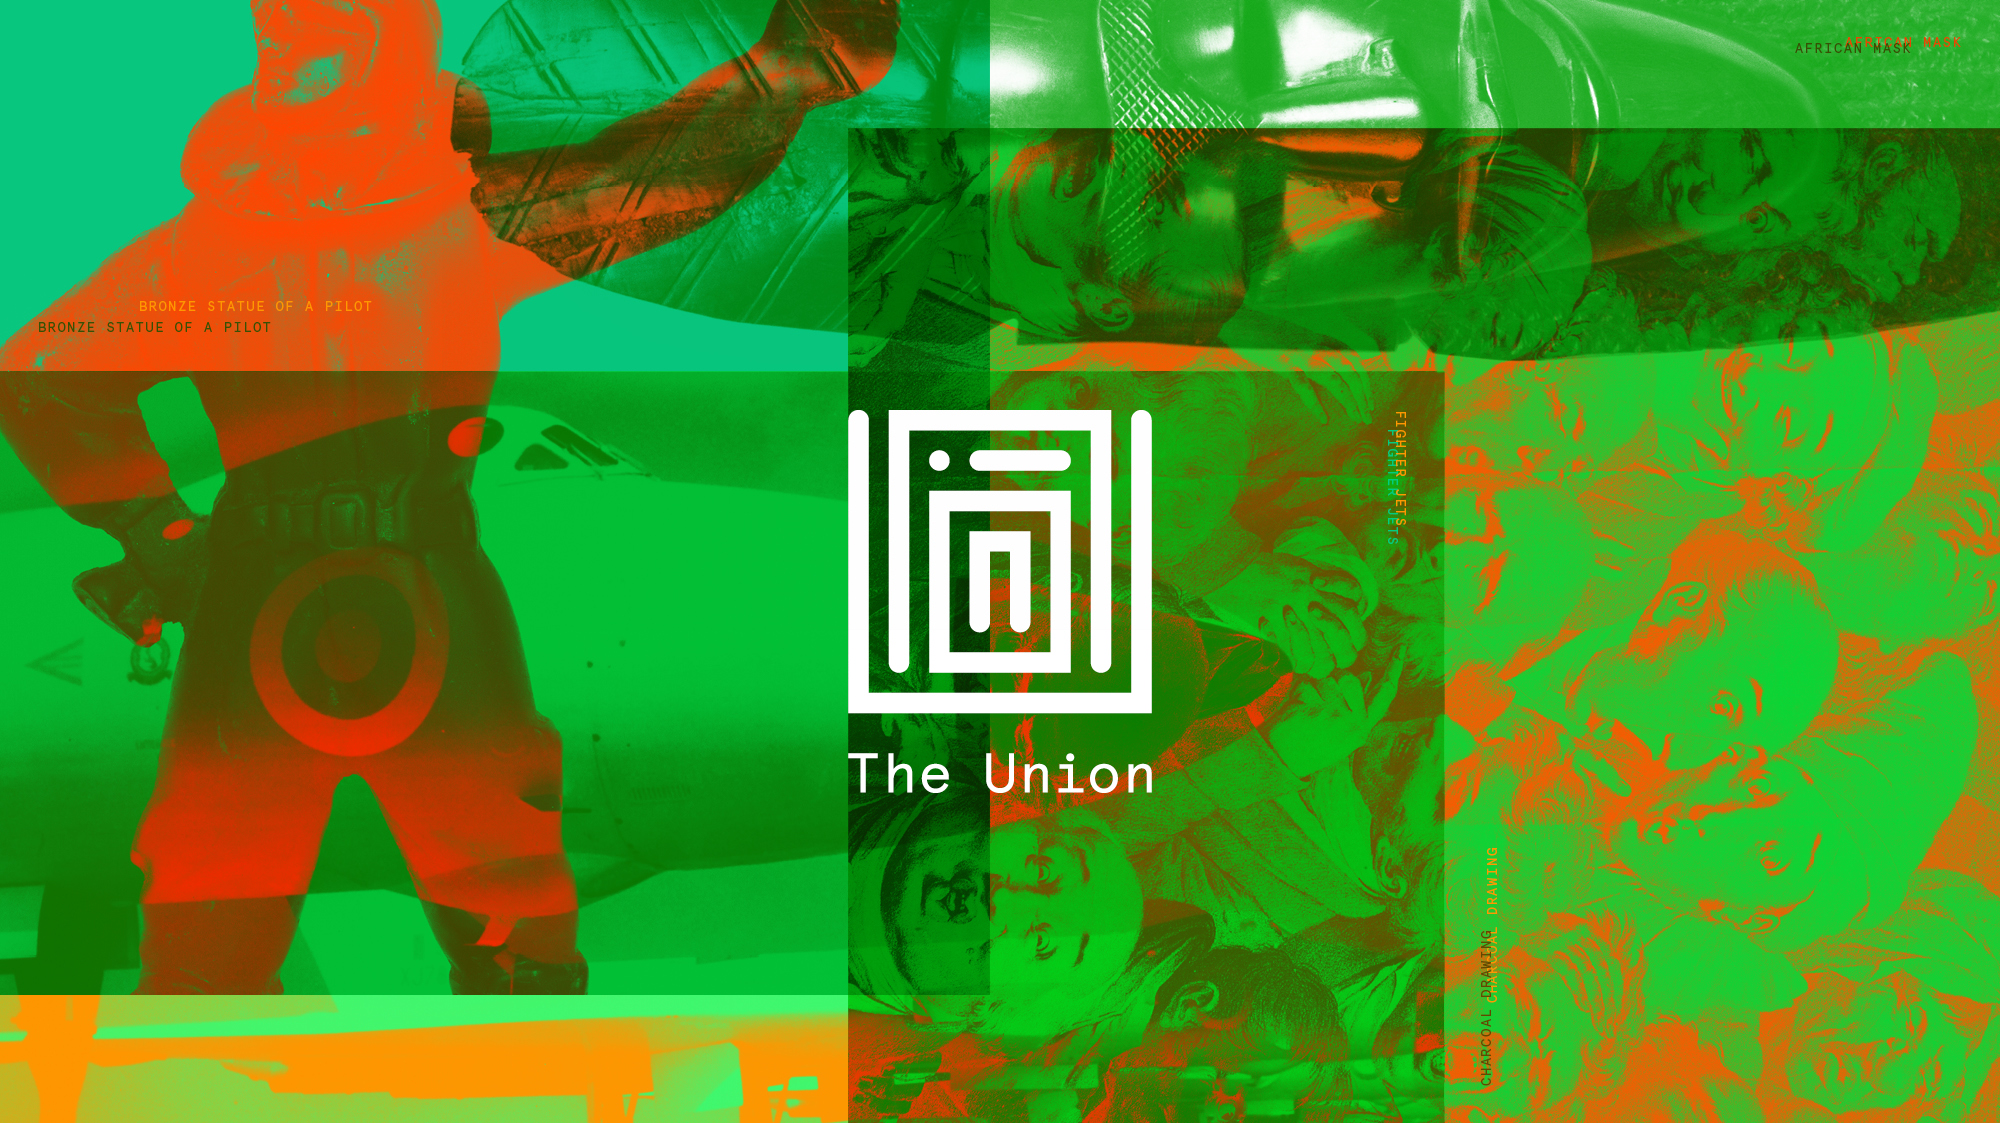 04 The Union background